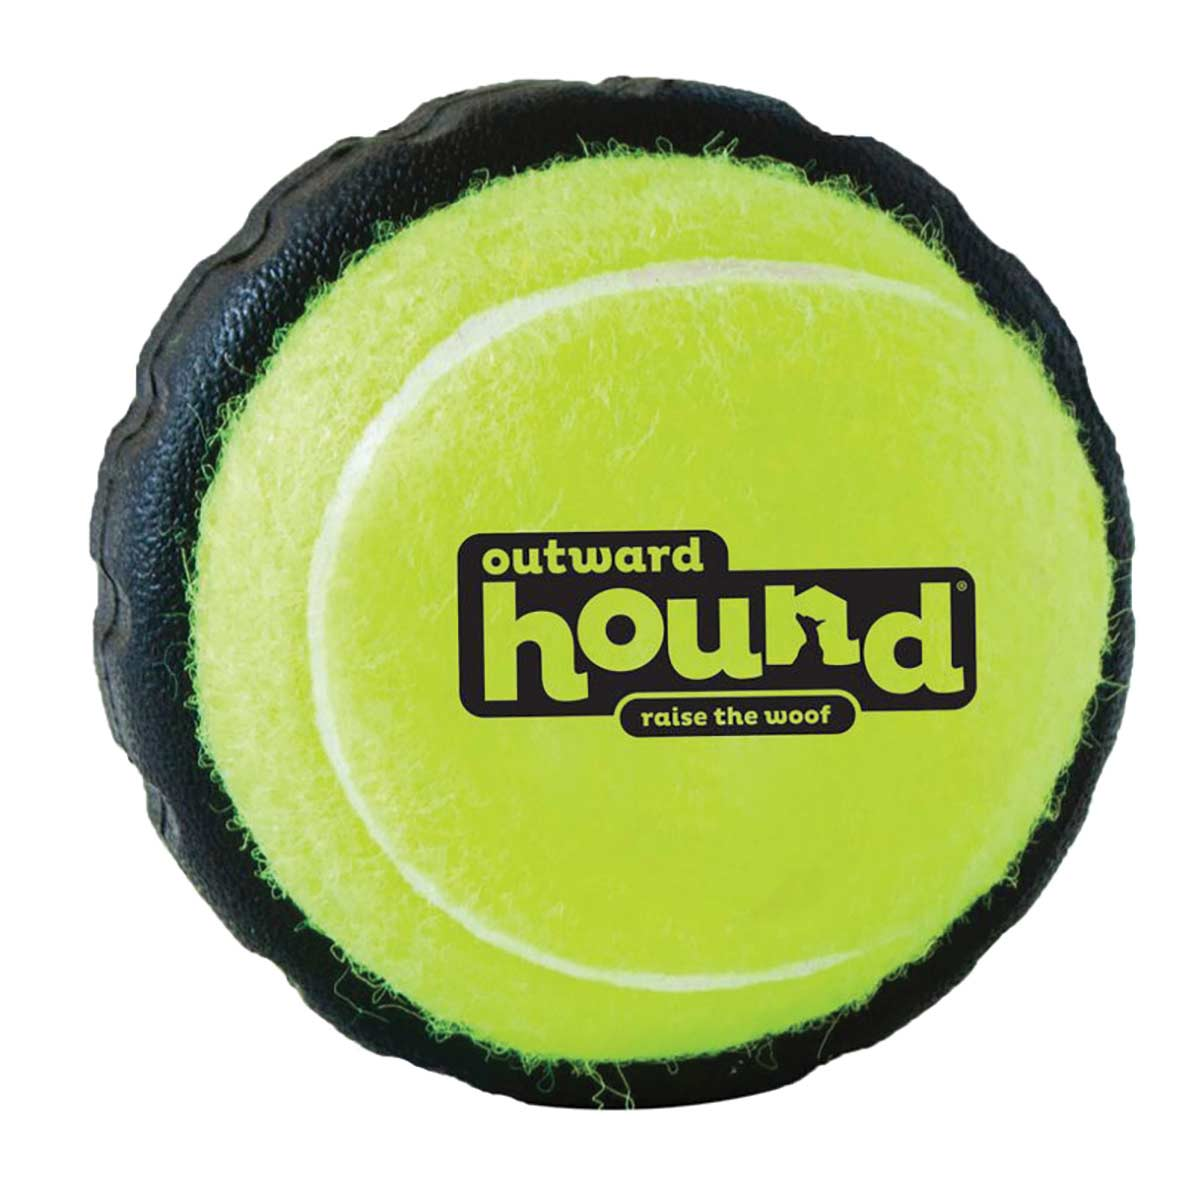 Outward Hound Tire Ball for Dogs - 6.5 inches